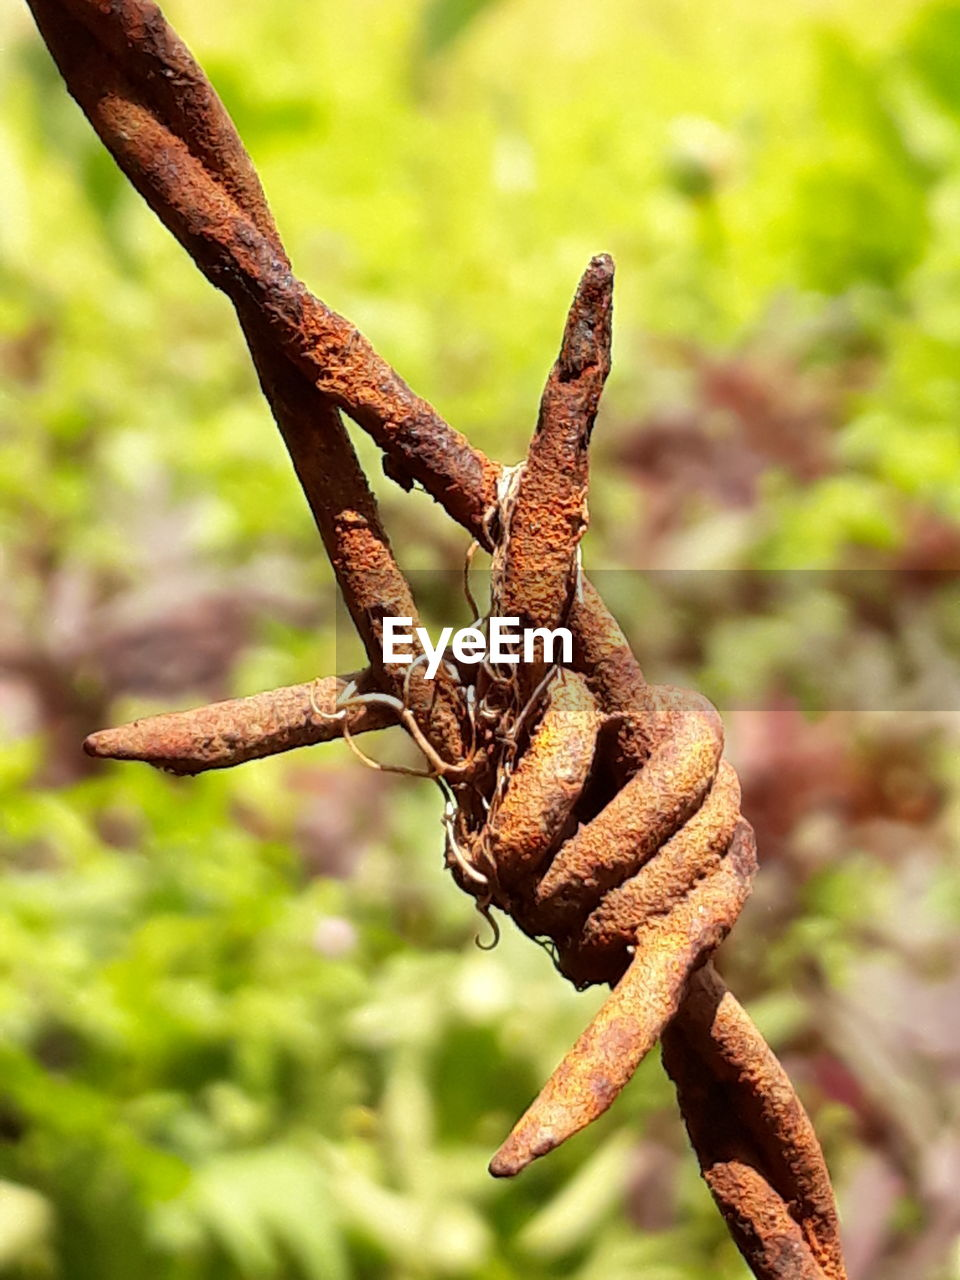 focus on foreground, plant, close-up, nature, no people, day, tree, rusty, branch, growth, outdoors, twisted, green color, beauty in nature, metal, plant part, twig, leaf, plant stem, tranquility, intertwined